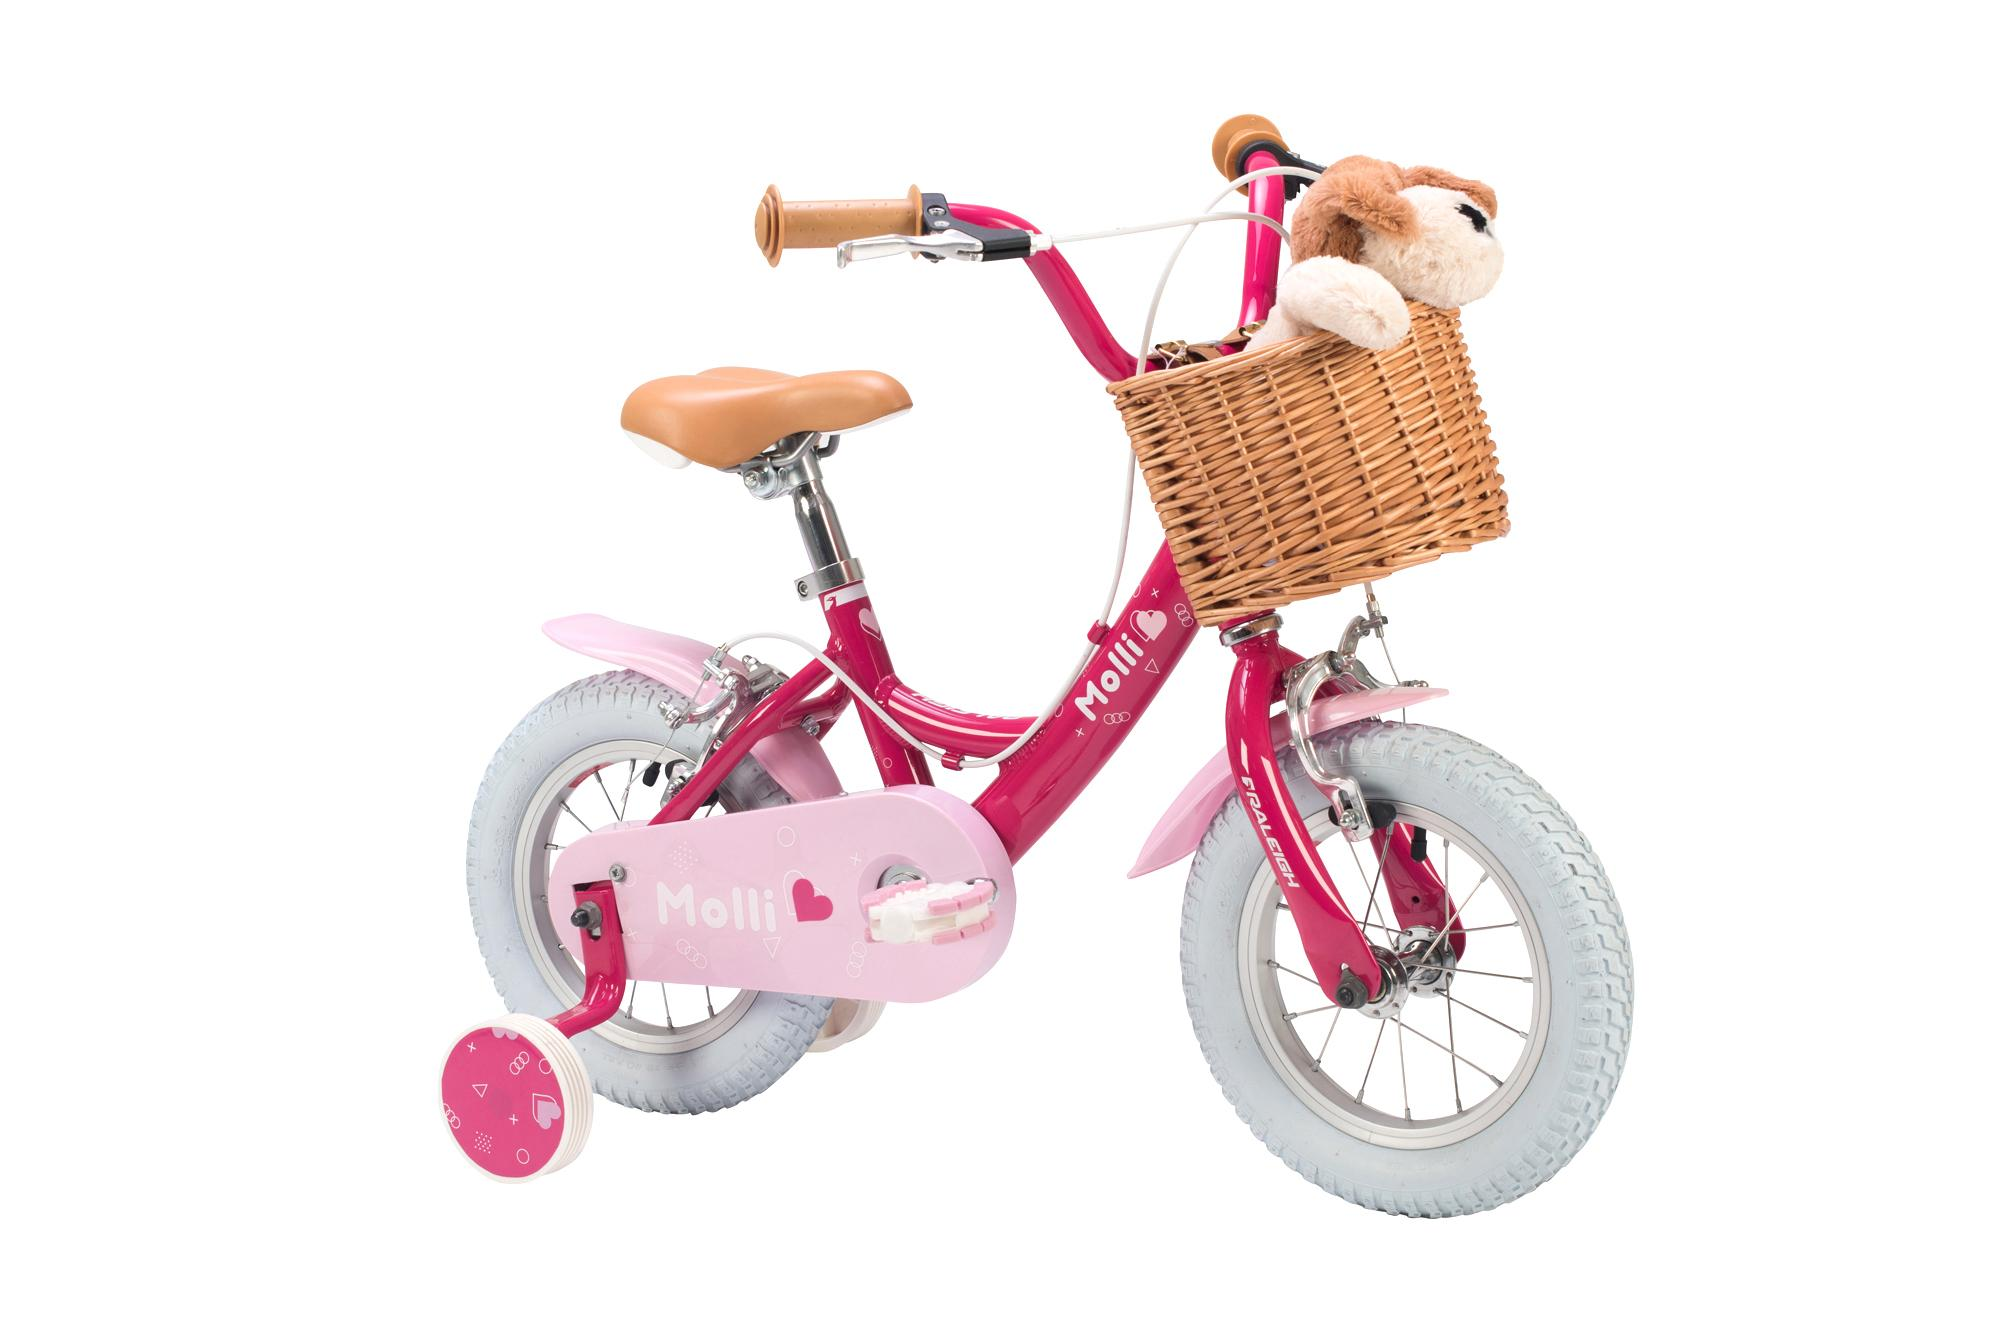 front view of the Raleigh Molli 12 inch girls bike with stabilisers